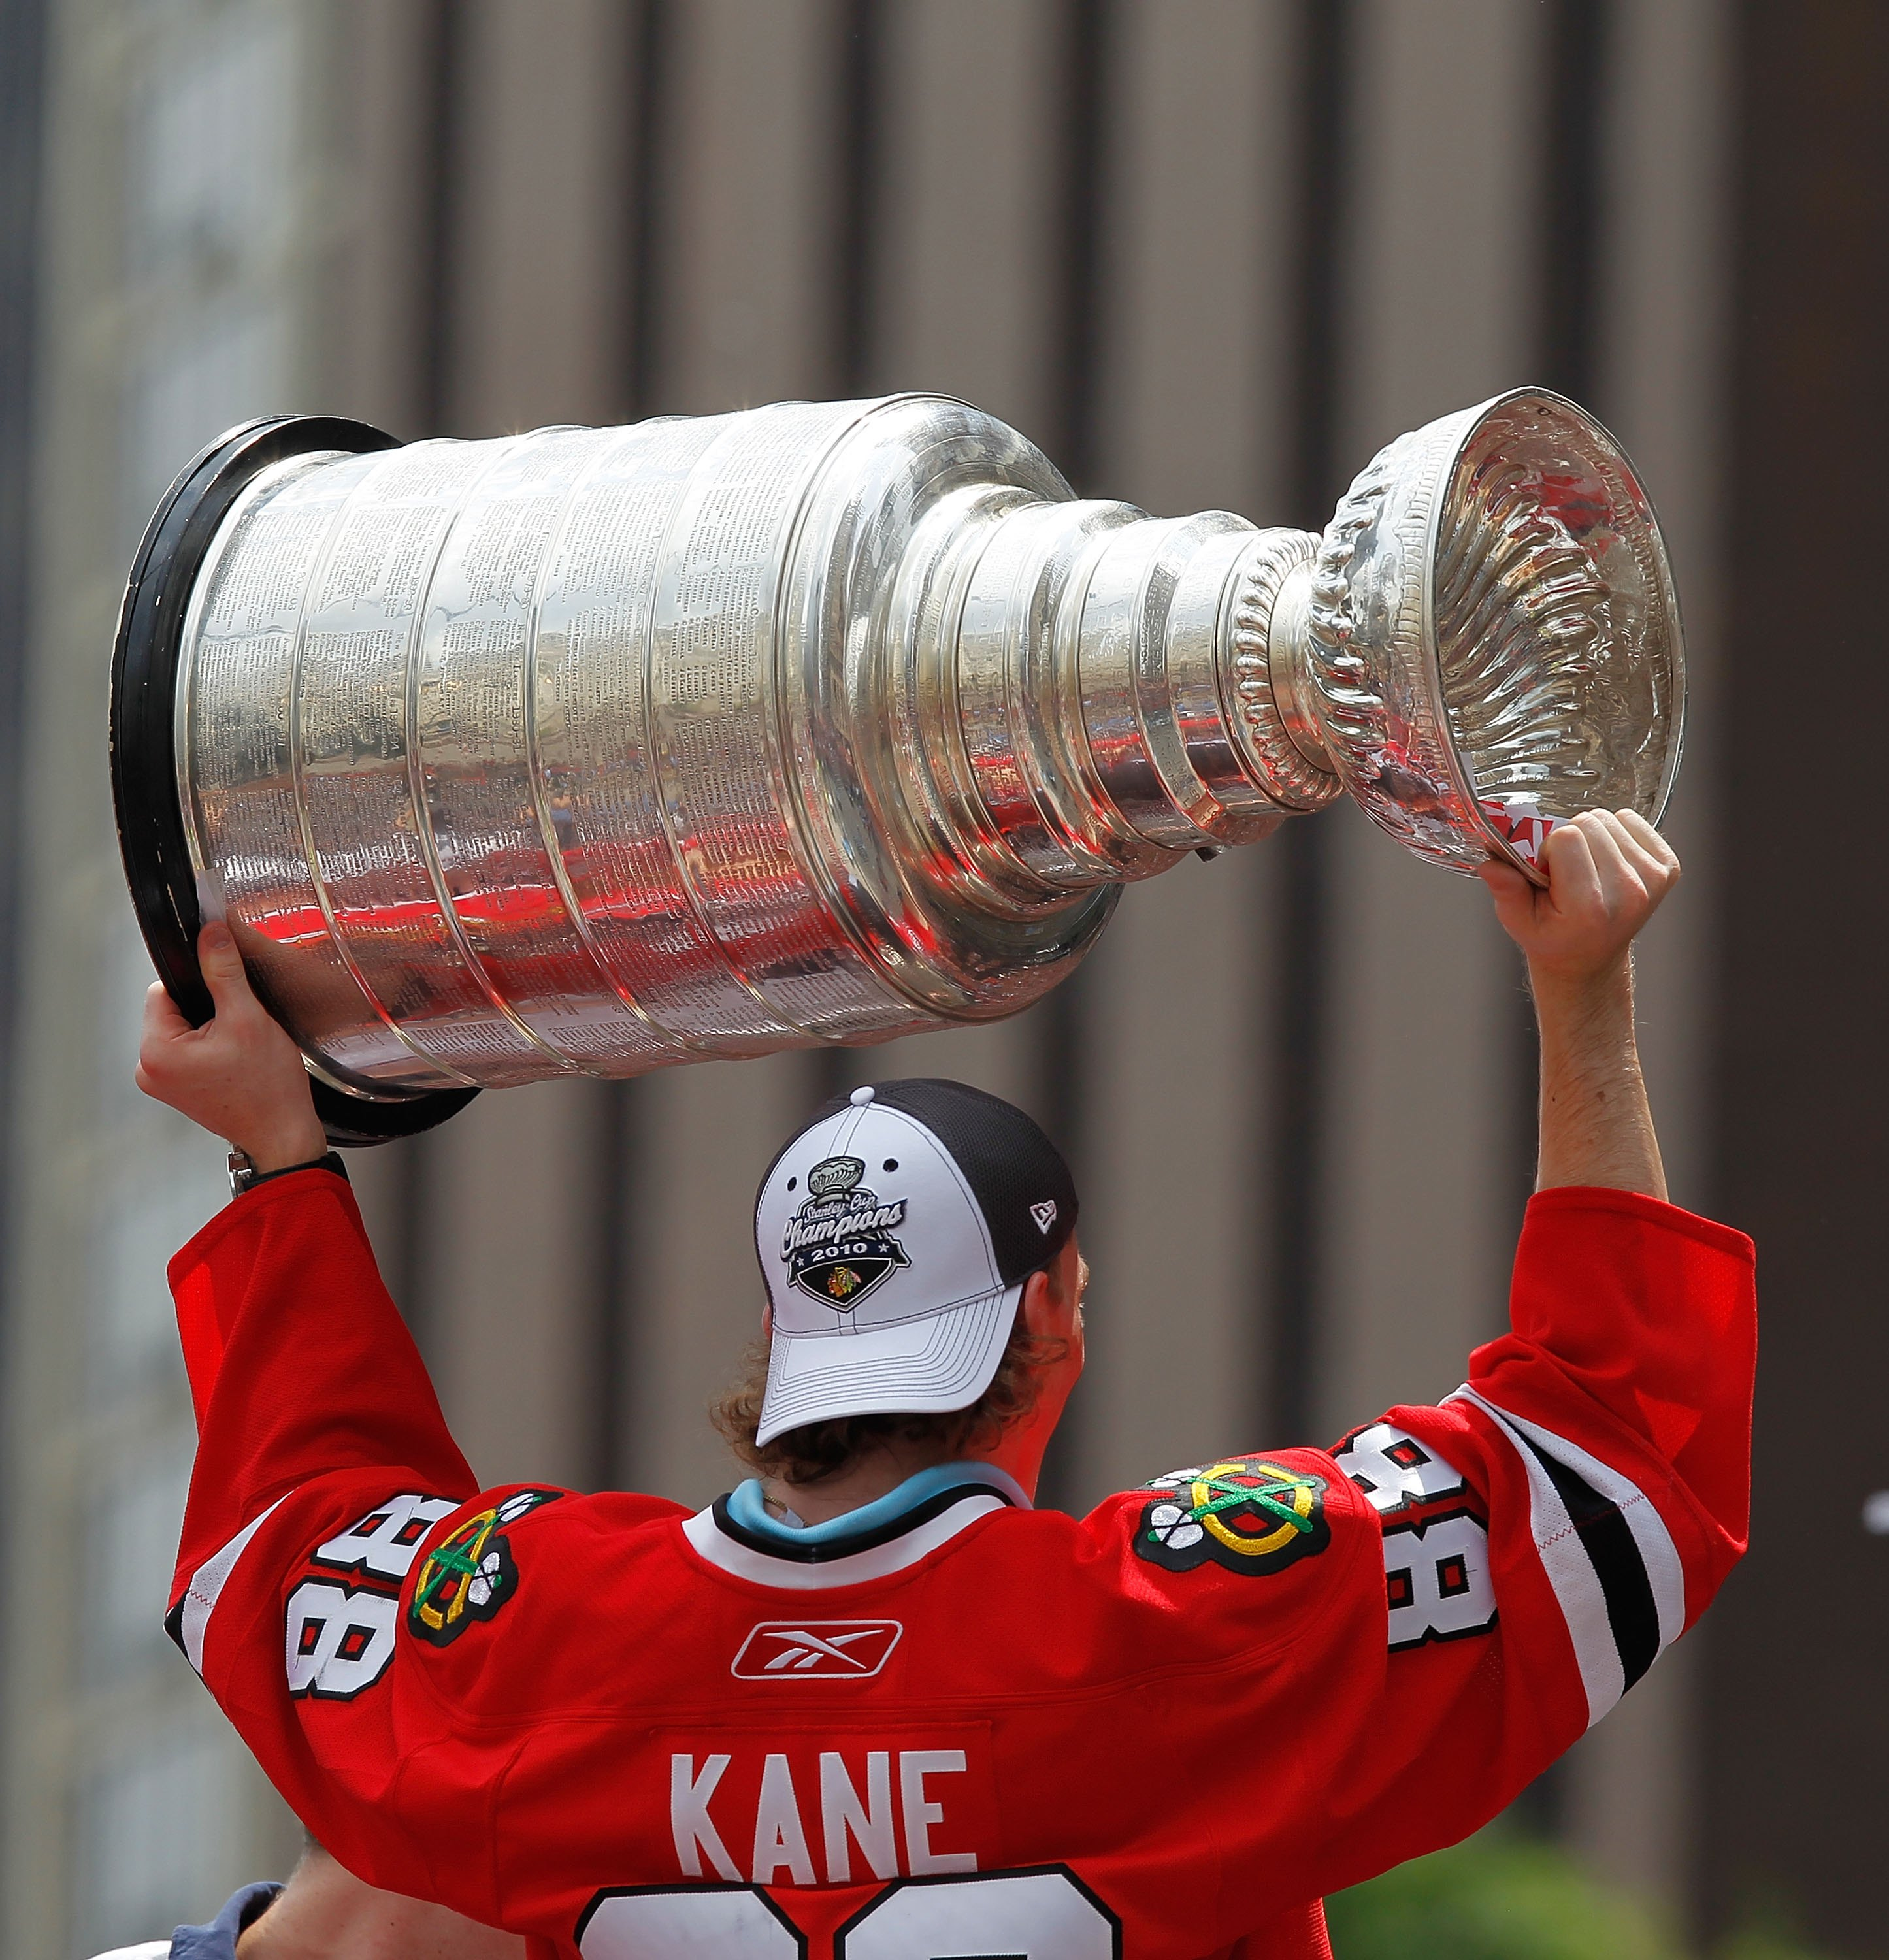 CHICAGO - JUNE 11: Patrick Kane #88 hoists the cup during the Chicago Blackhawks Stanley Cup victory parade and rally on June 11, 2010 in Chicago, Illinois. (Photo by Jonathan Daniel/Getty Images)